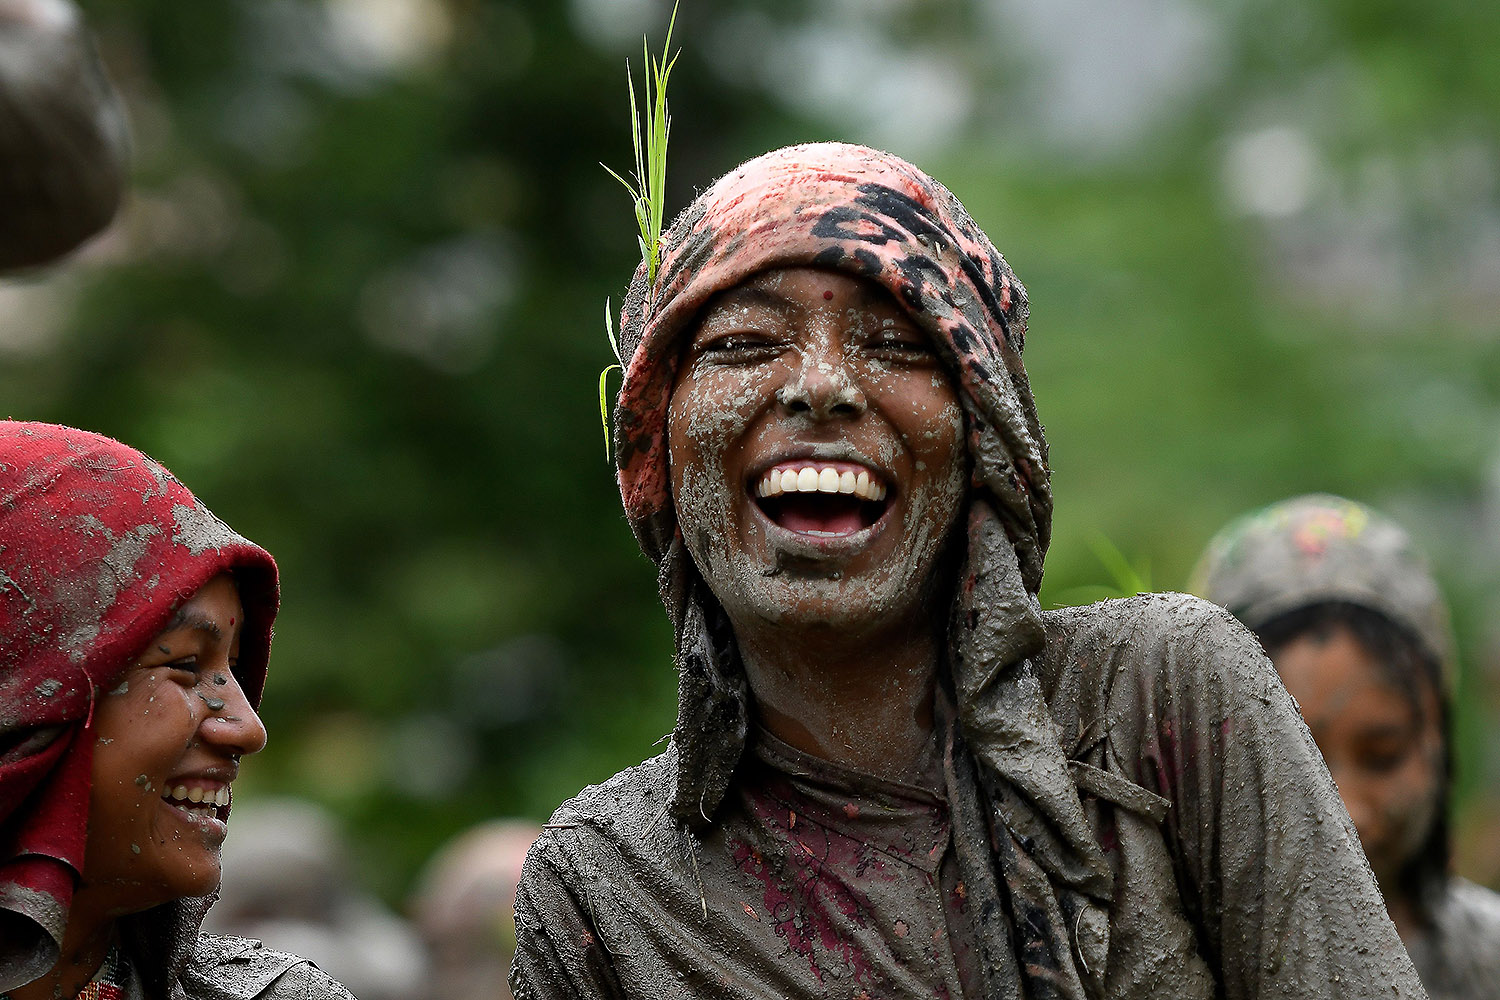 A woman smiles in a rice paddy field during National Paddy Day—which marks the start of the annual rice planting season—in Tokha village on the outskirts of Kathmandu, Nepal, on June 29. PRAKASH MATHEMA/AFP via Getty Images